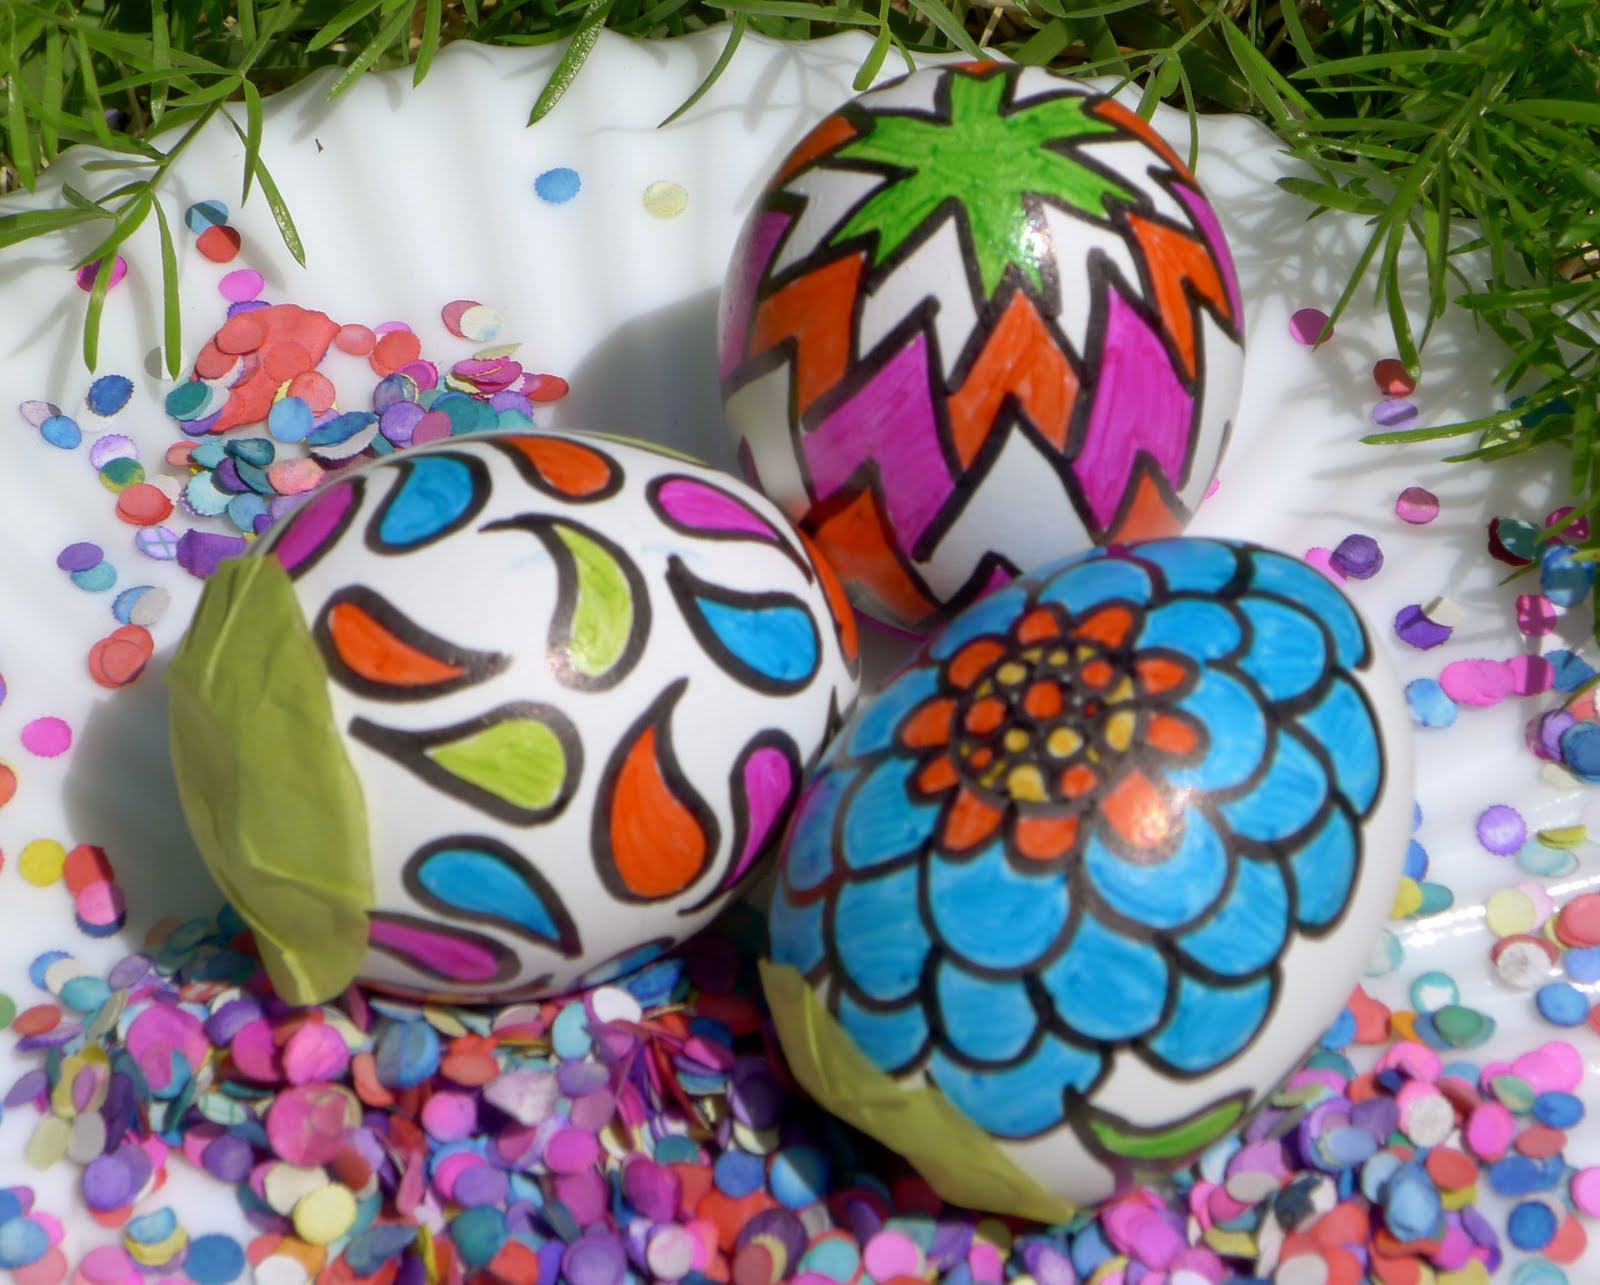 You guys, Easter's a couple of weeks away, and I went on an Easter egg decorating binge last weekend. I realized that I hadn't dyed eggs in years, and I think I may have been trying to make up for lost time.